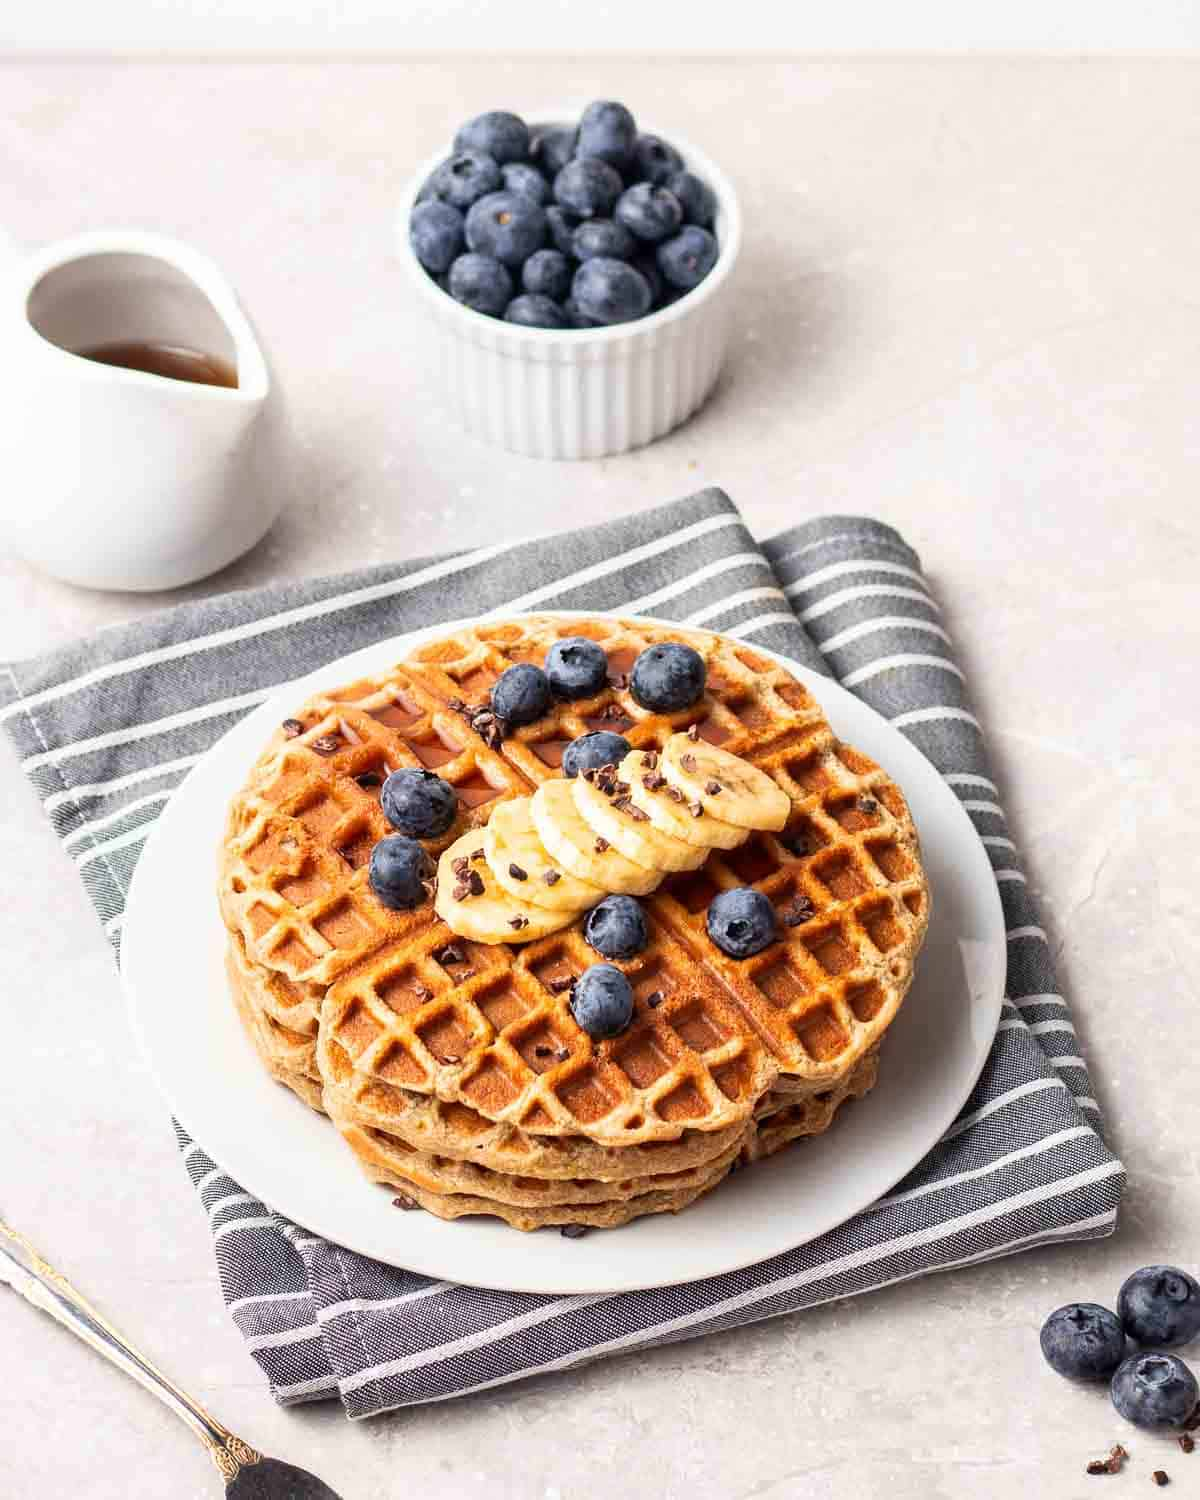 Stack of waffles on a white plate with a bowl of blueberries and maple syrup in the background.